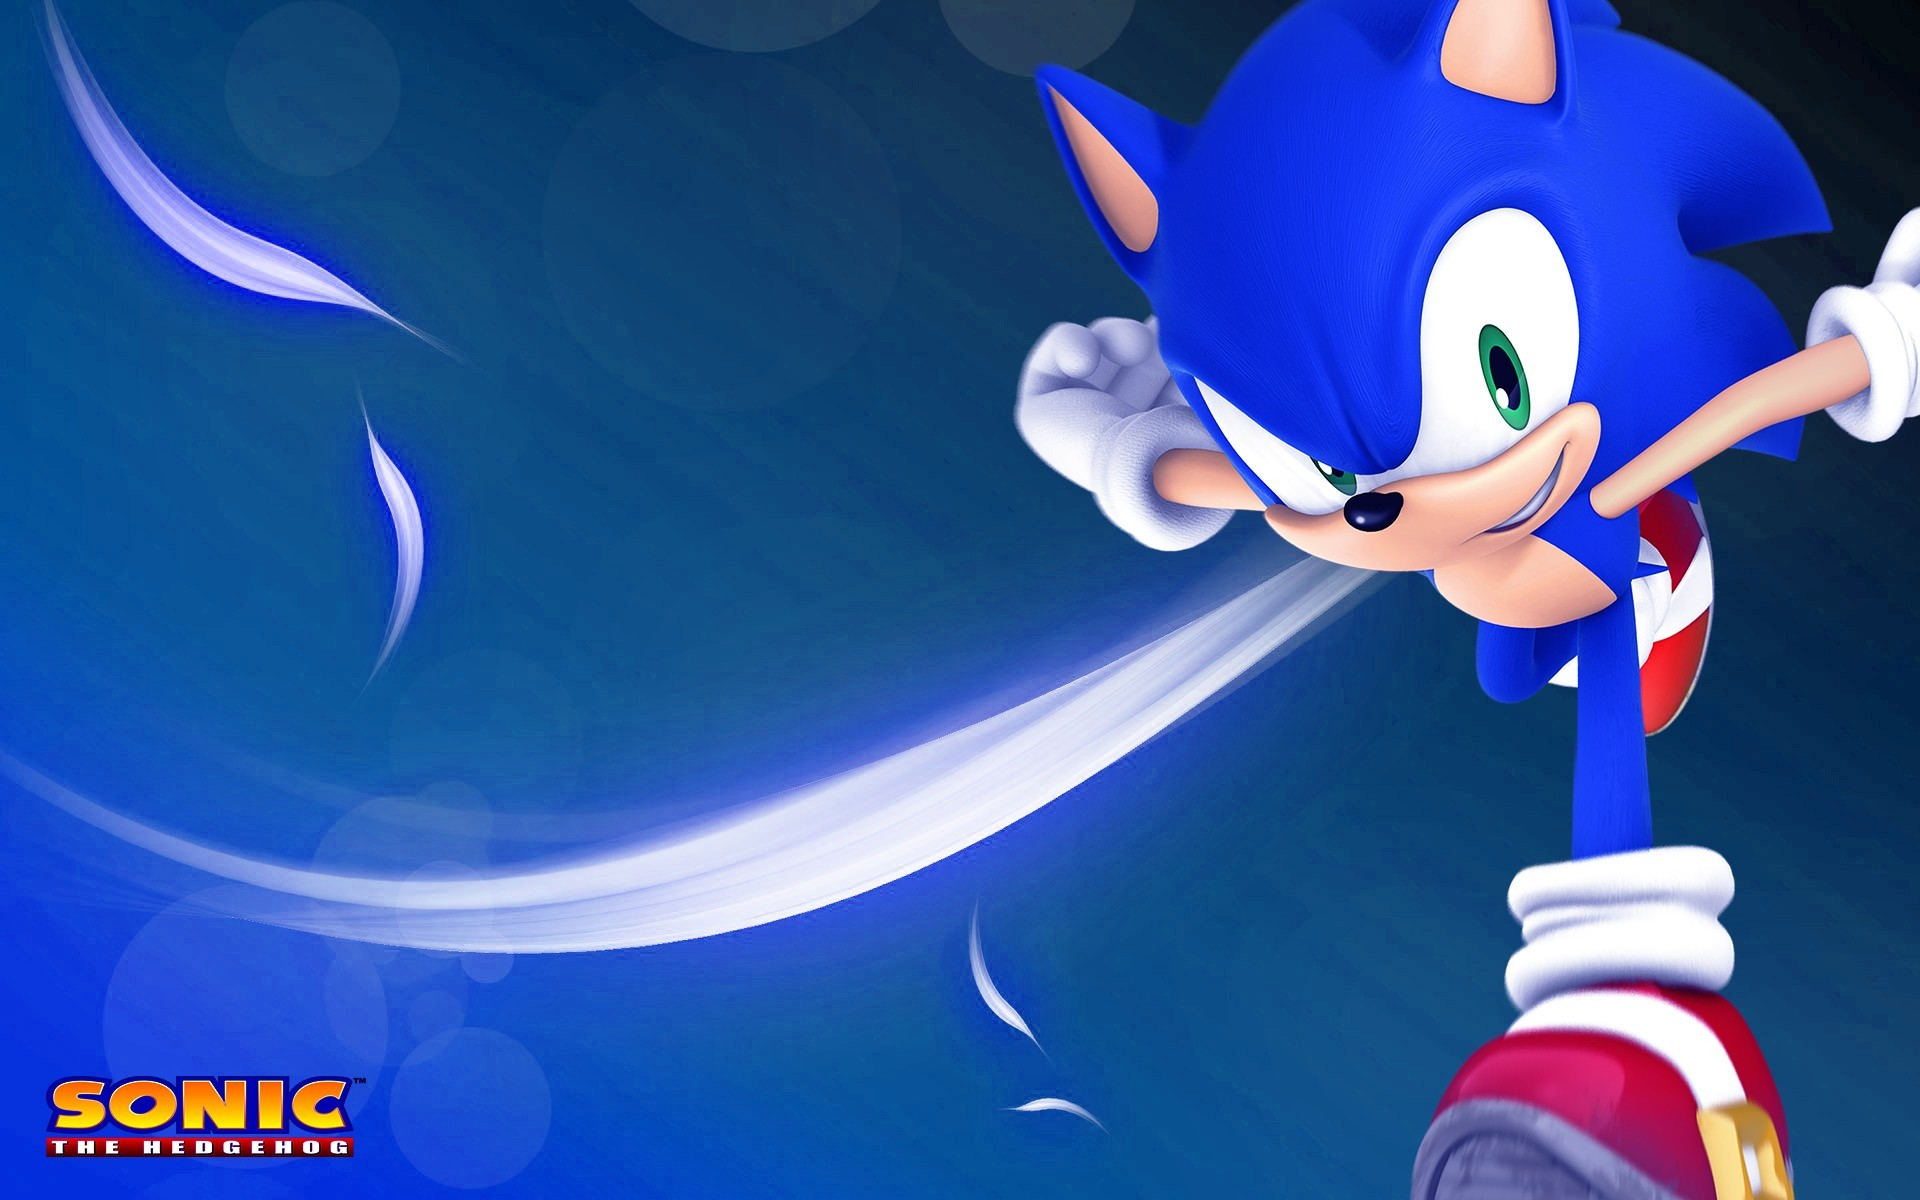 Video Game – Sonic the Hedgehog Wallpaper